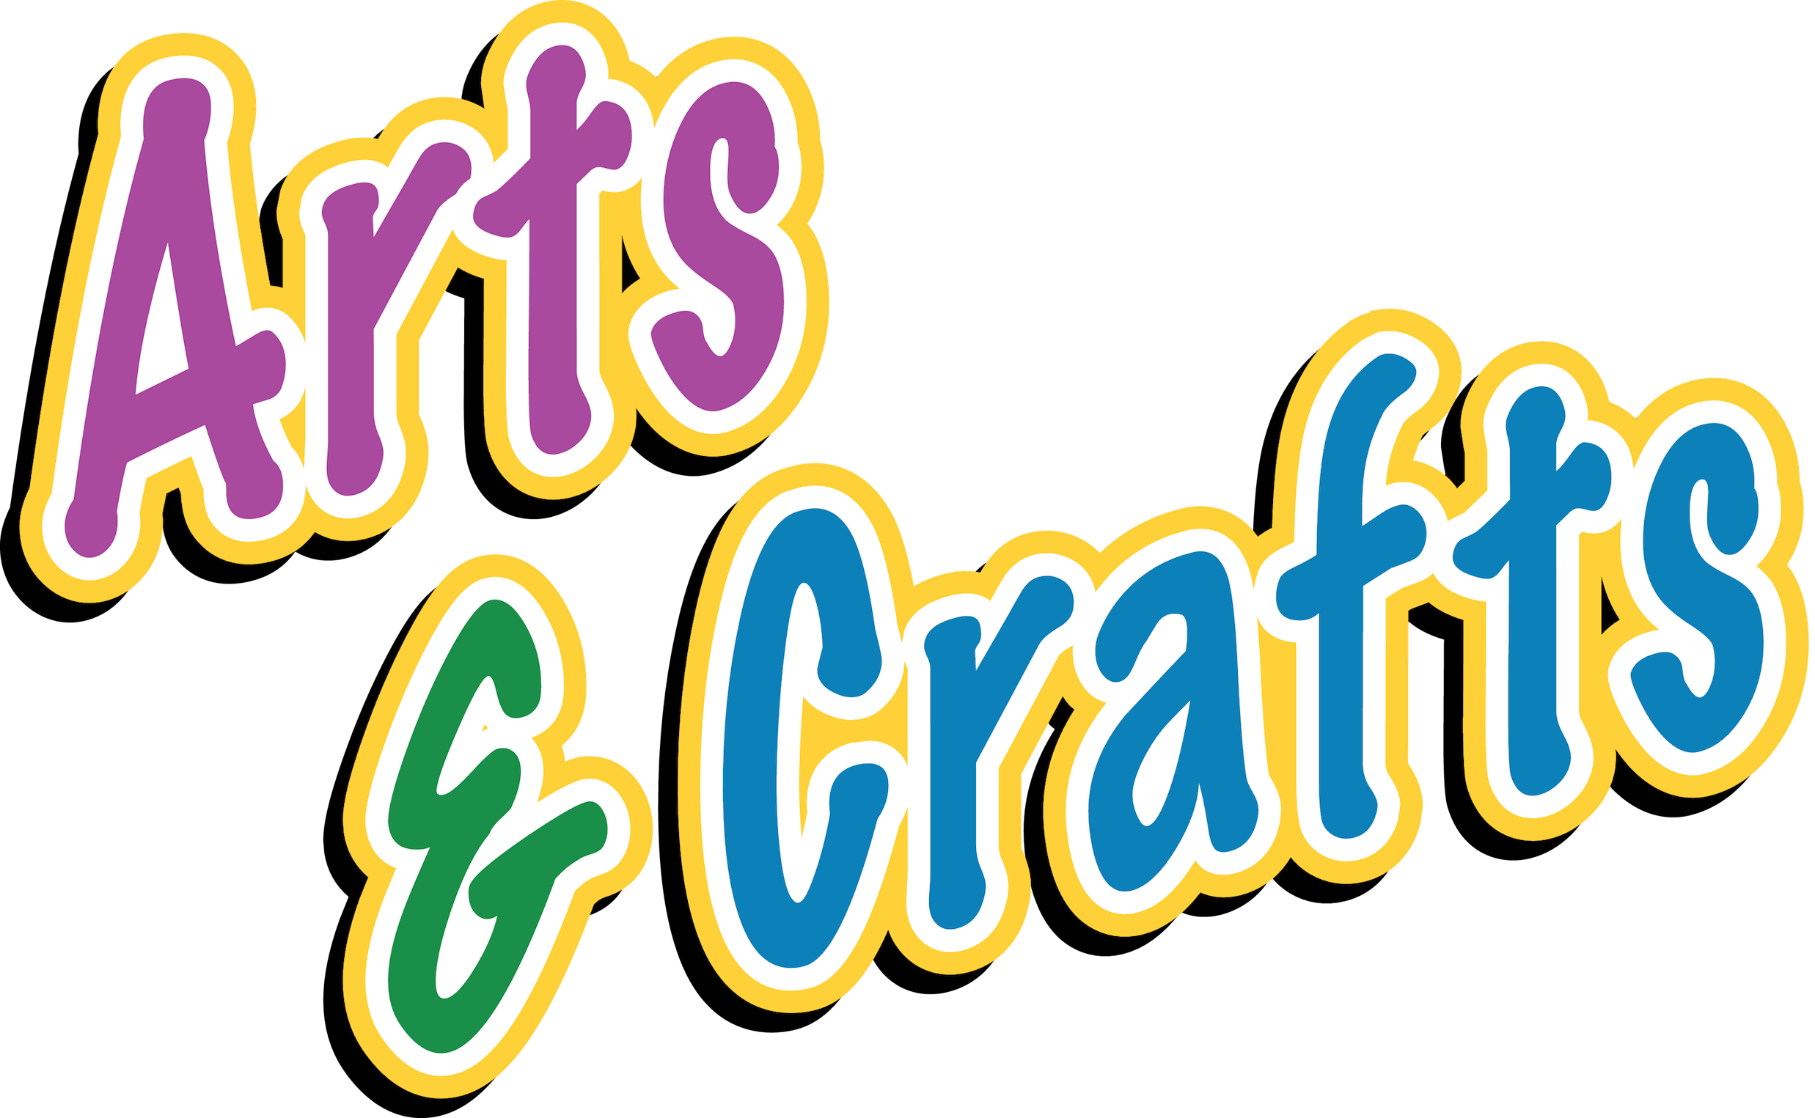 Arts and crafts village of union grove for Michaels arts and crafts jobs application form